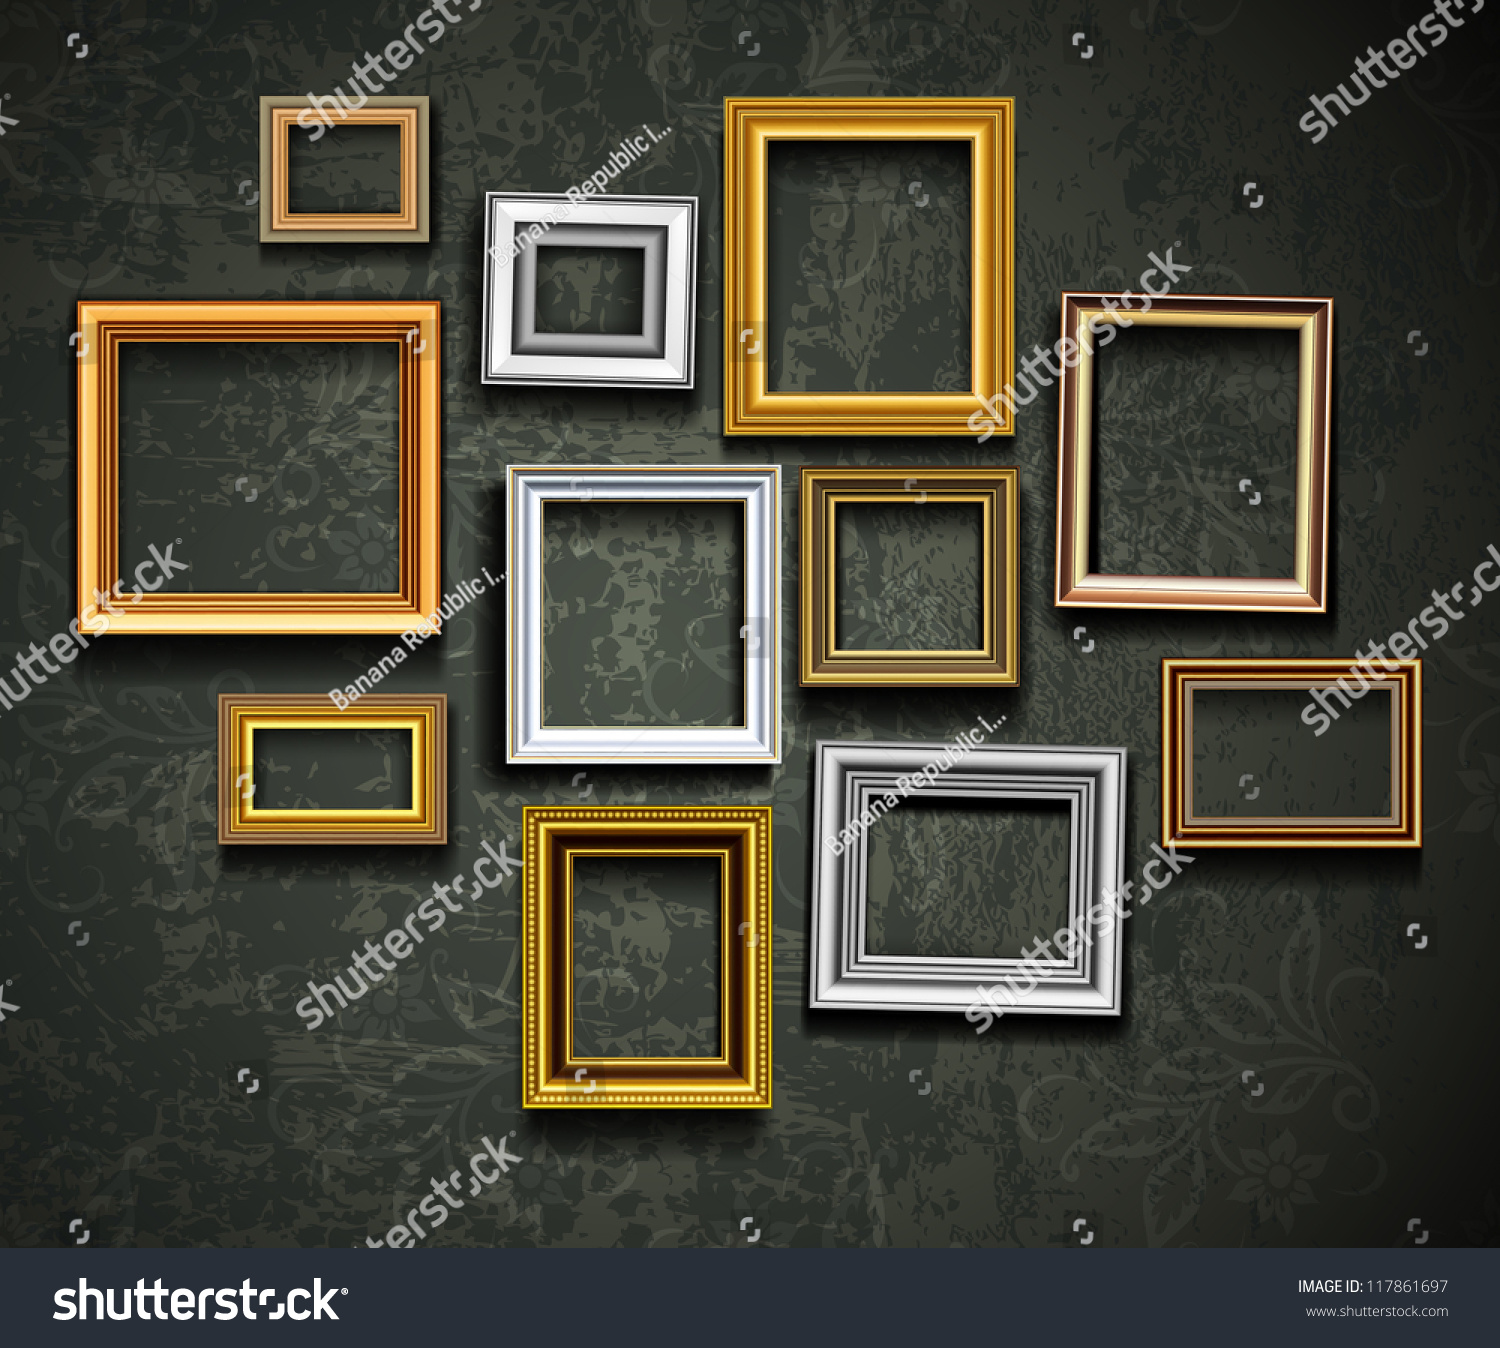 frame vector photo or picture art on vintage wall